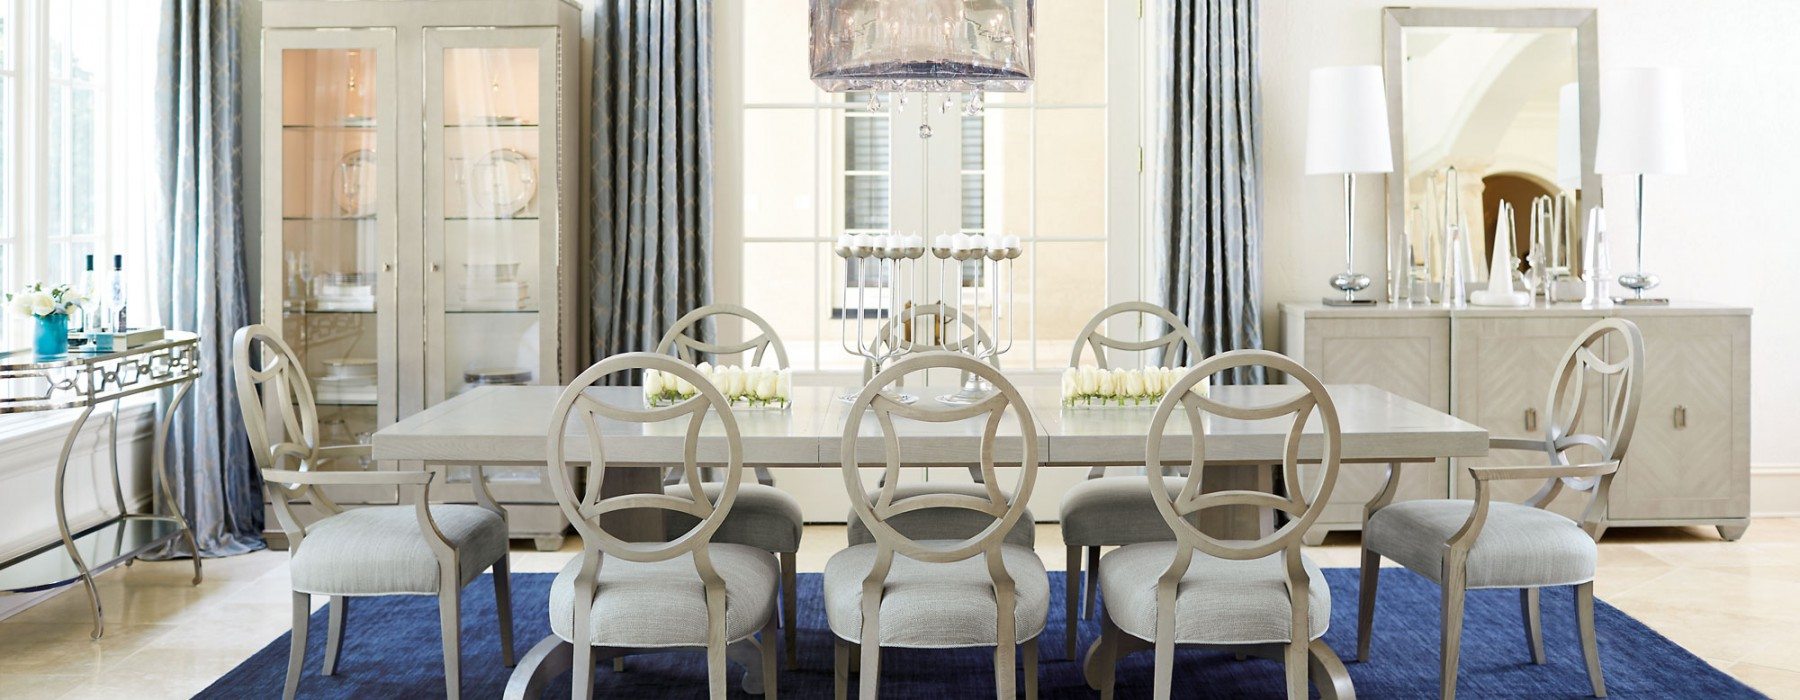 Expert Advice: How to Design a Perfectly Scaled Dining Room